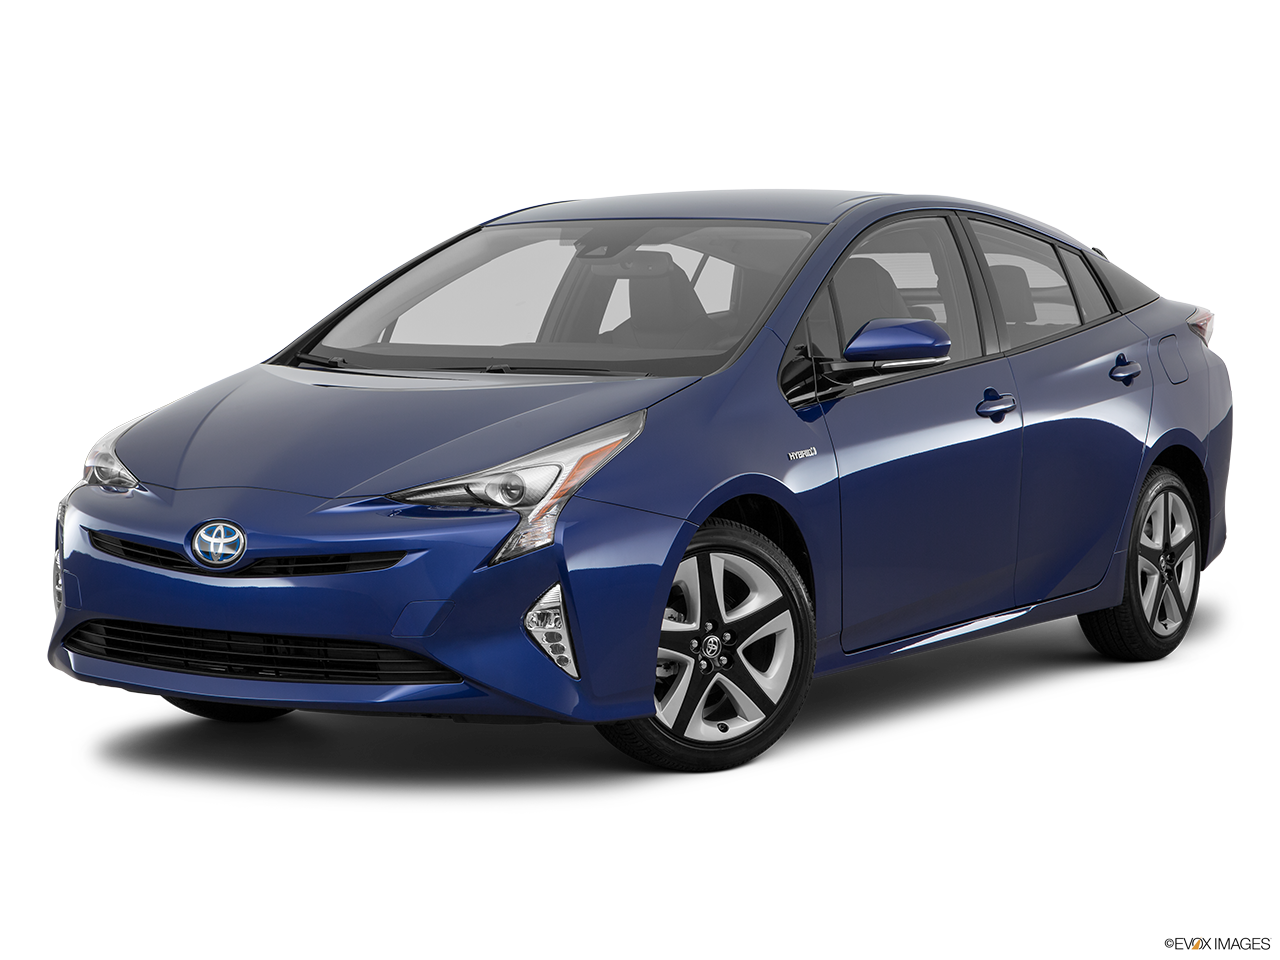 Test Drive A 2016 Toyota Prius at Toyota of Glendale in Los Angeles